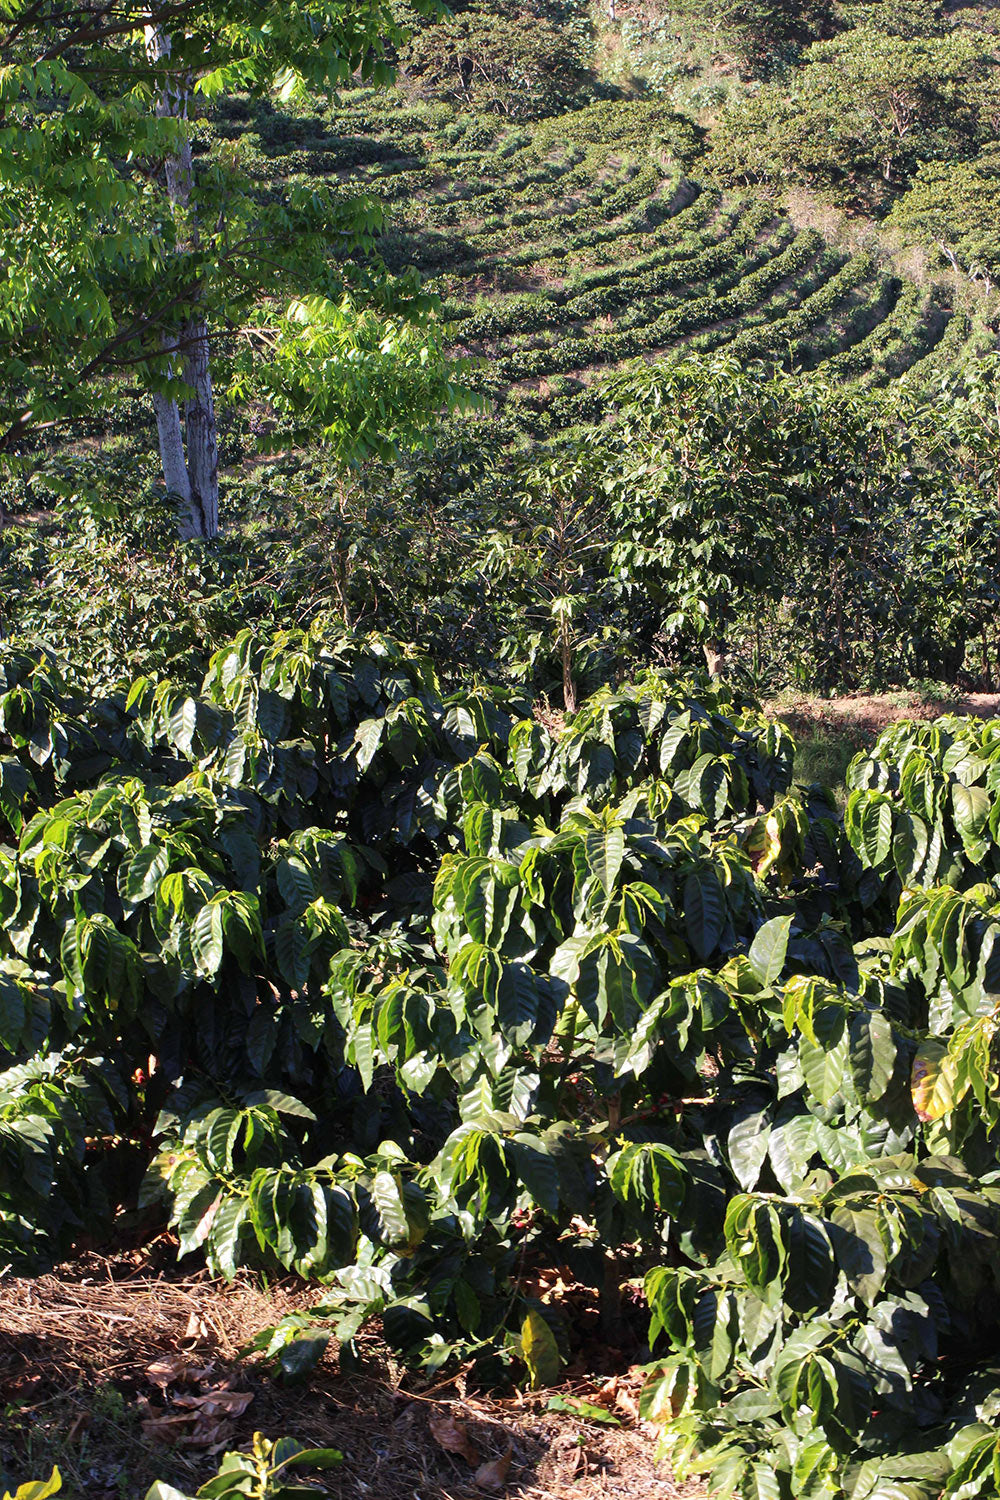 Pacamara coffee at Finca El Manzano planted without shade trees.